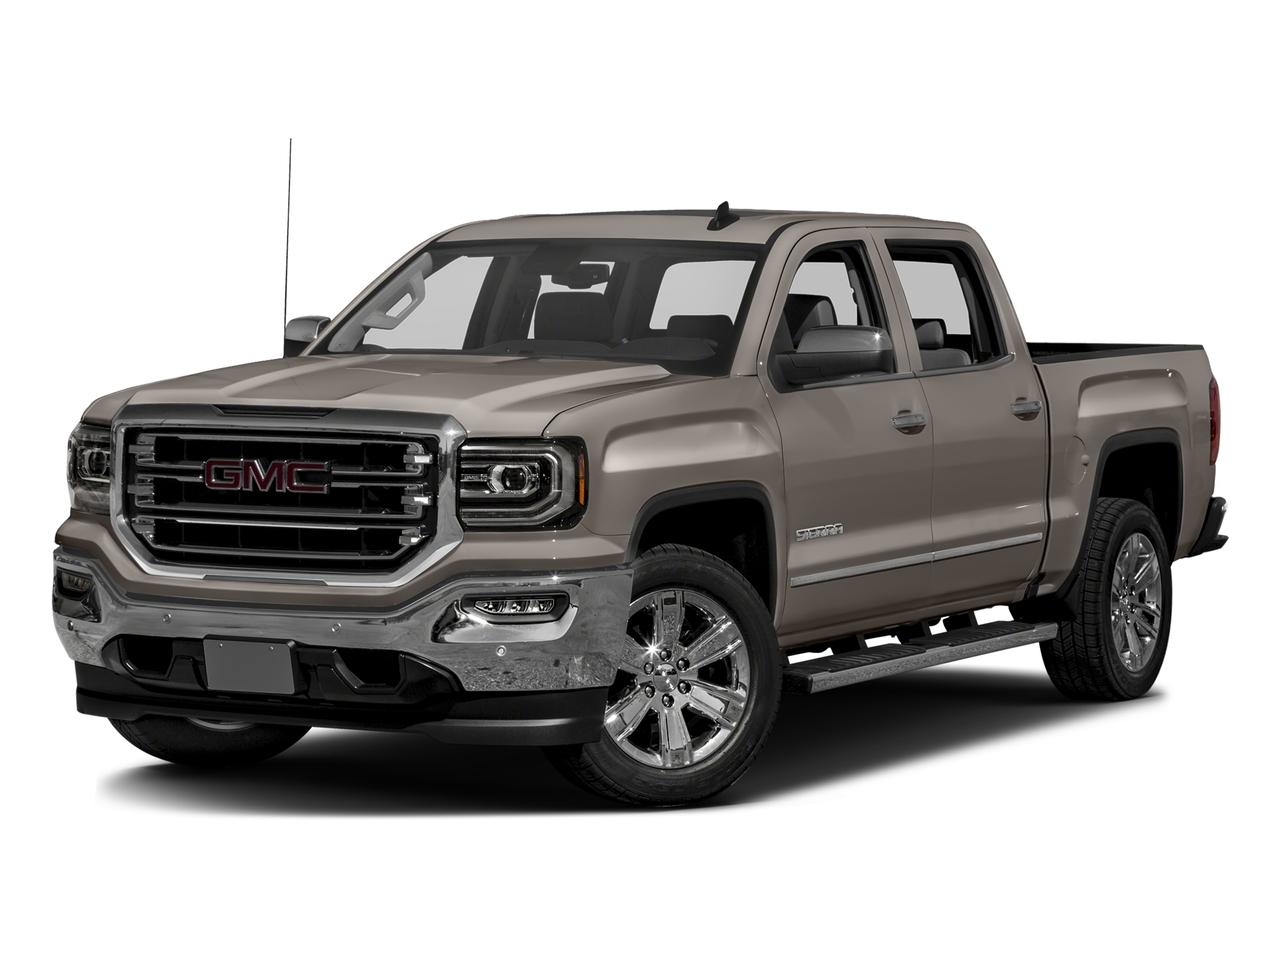 2017 GMC Sierra 1500 Vehicle Photo in Gainesville, GA 30504